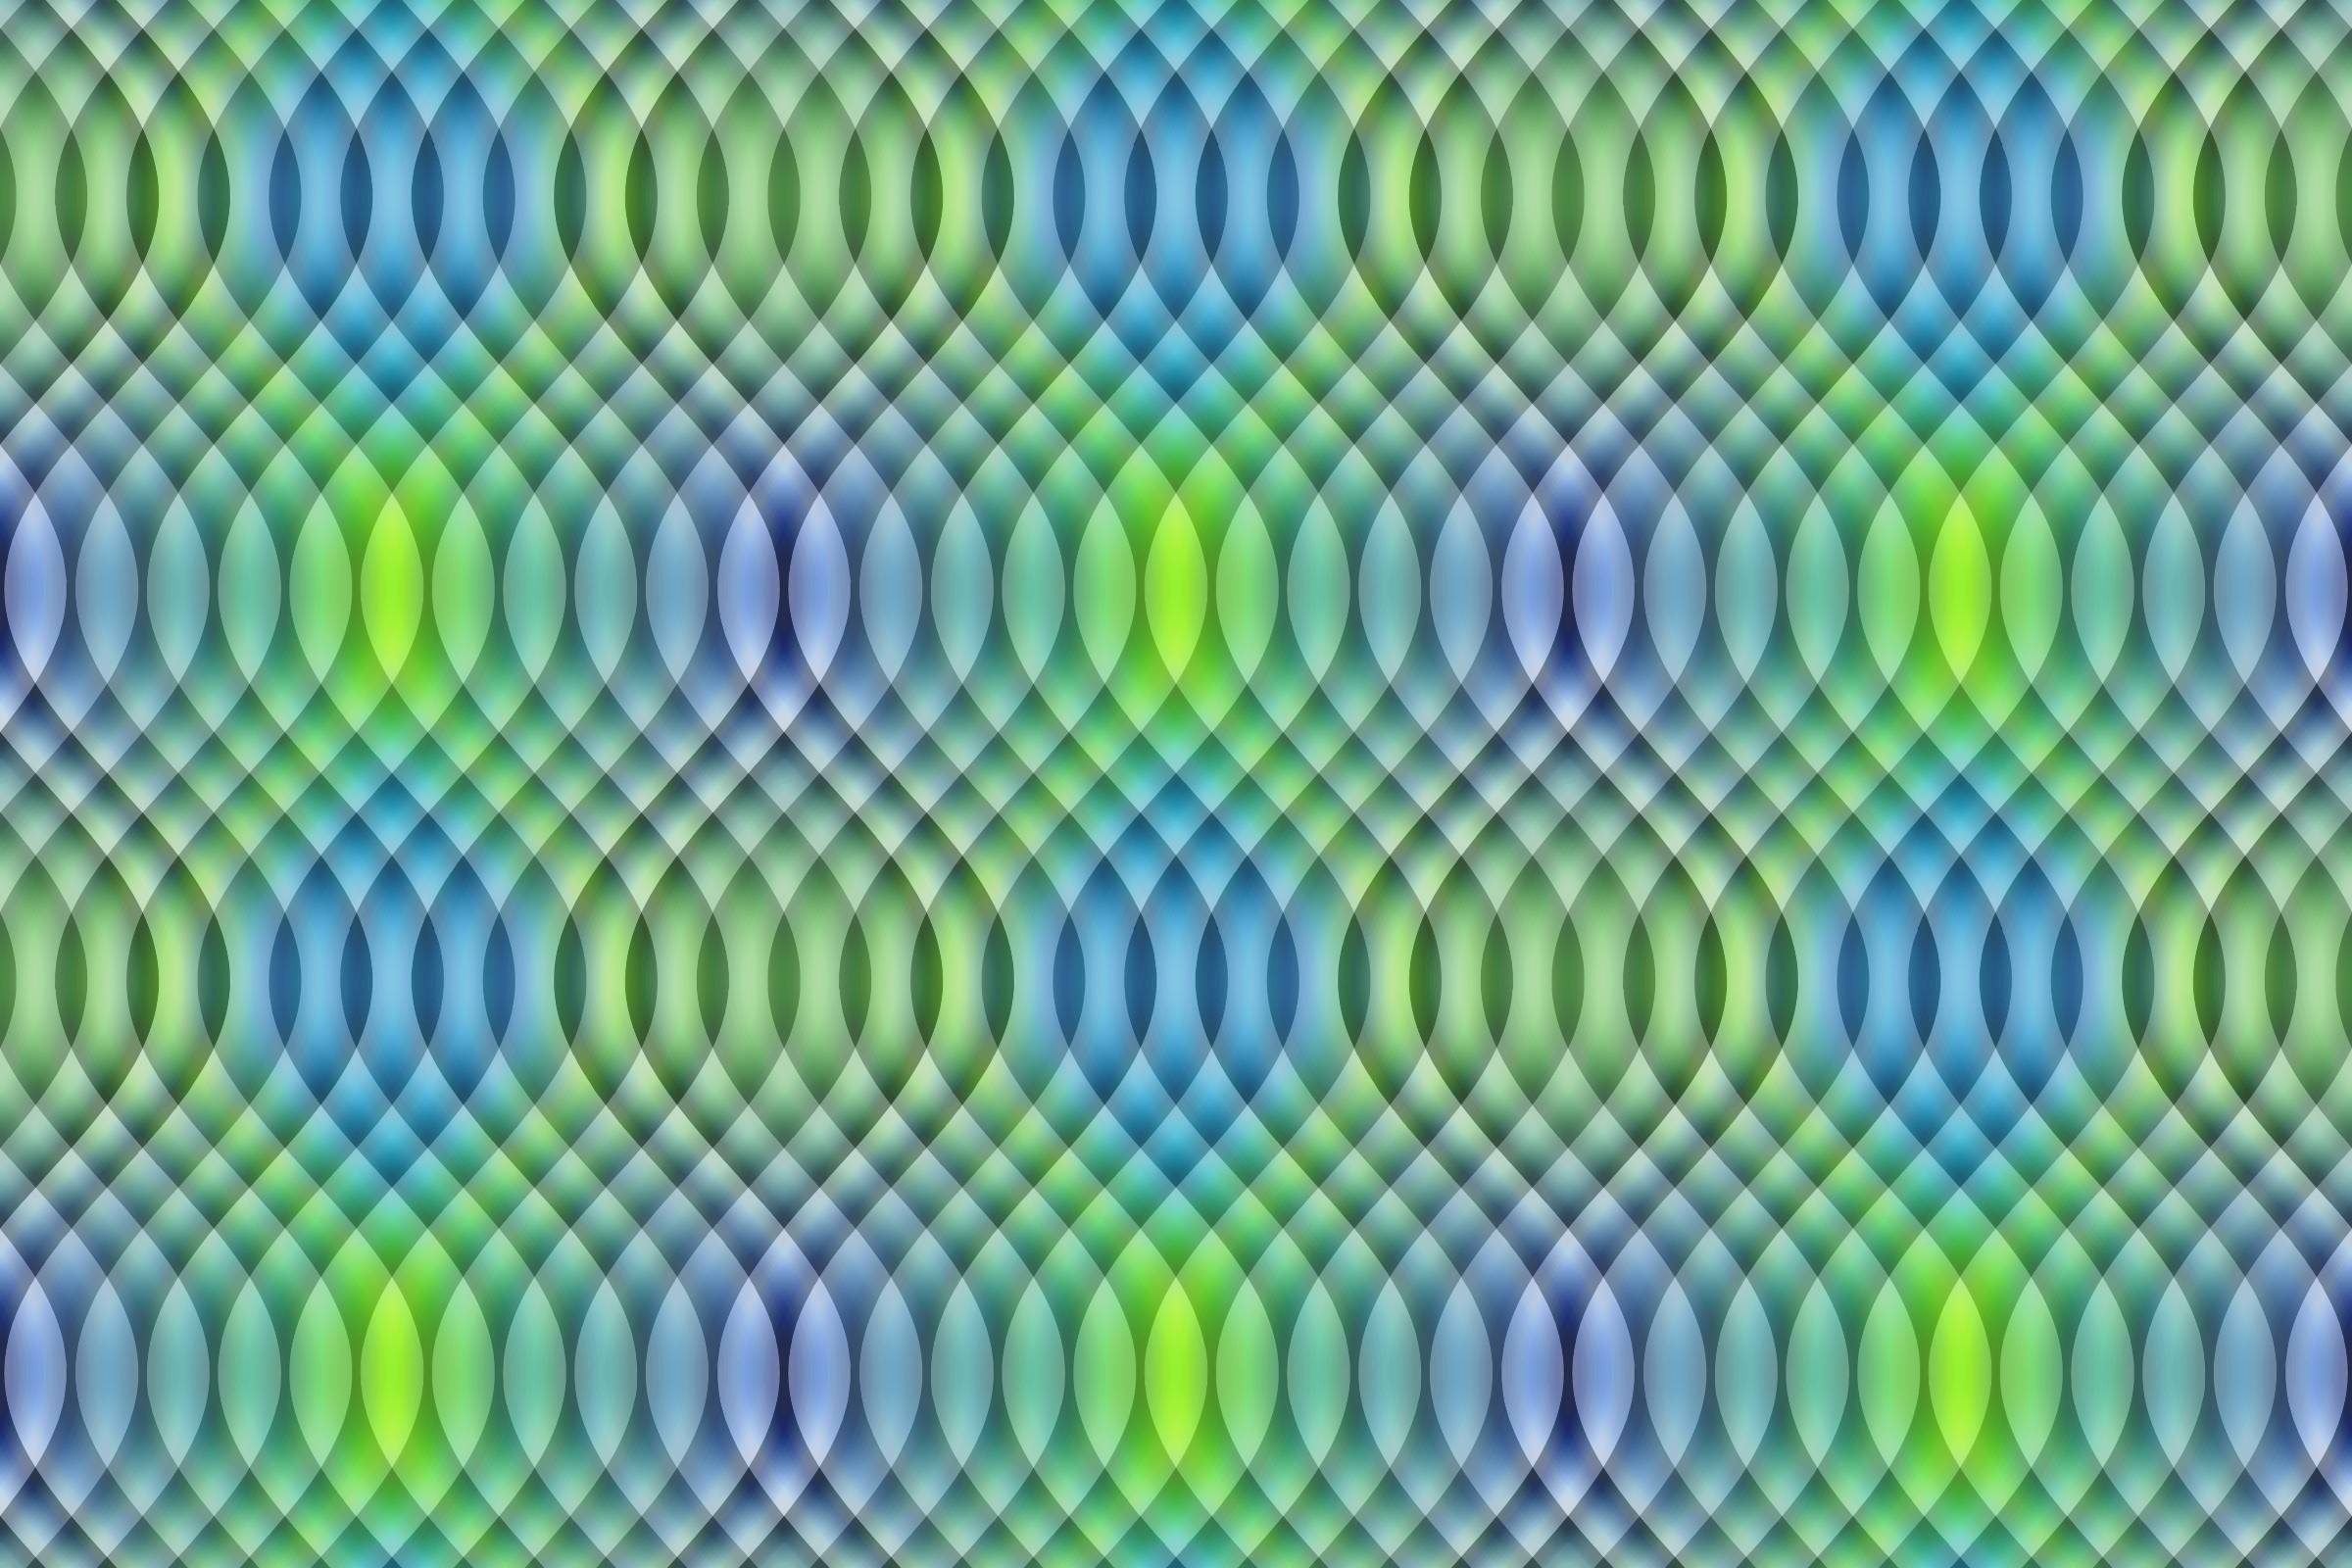 Wavy background 9 (colour 2) by Firkin